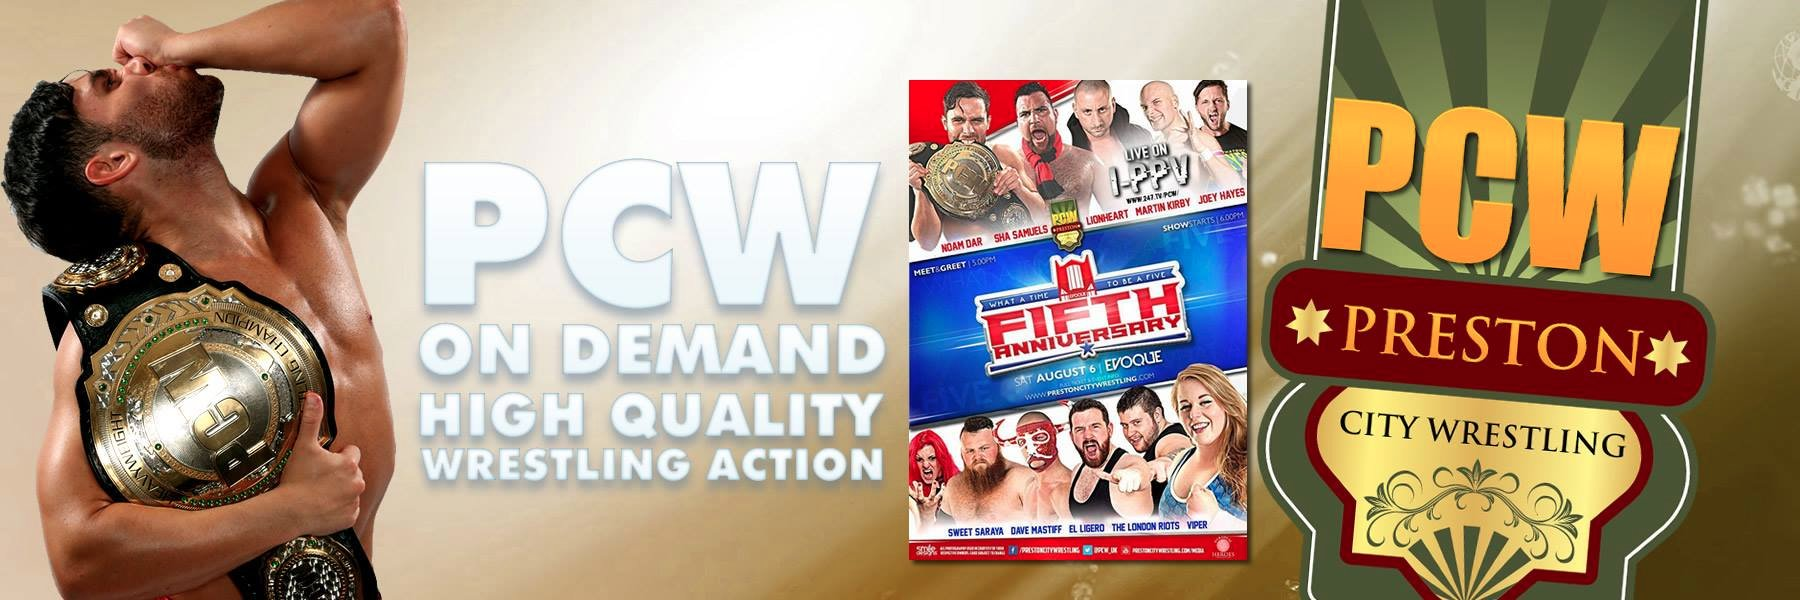 PCW Fifth Anniversary show now available on demand!